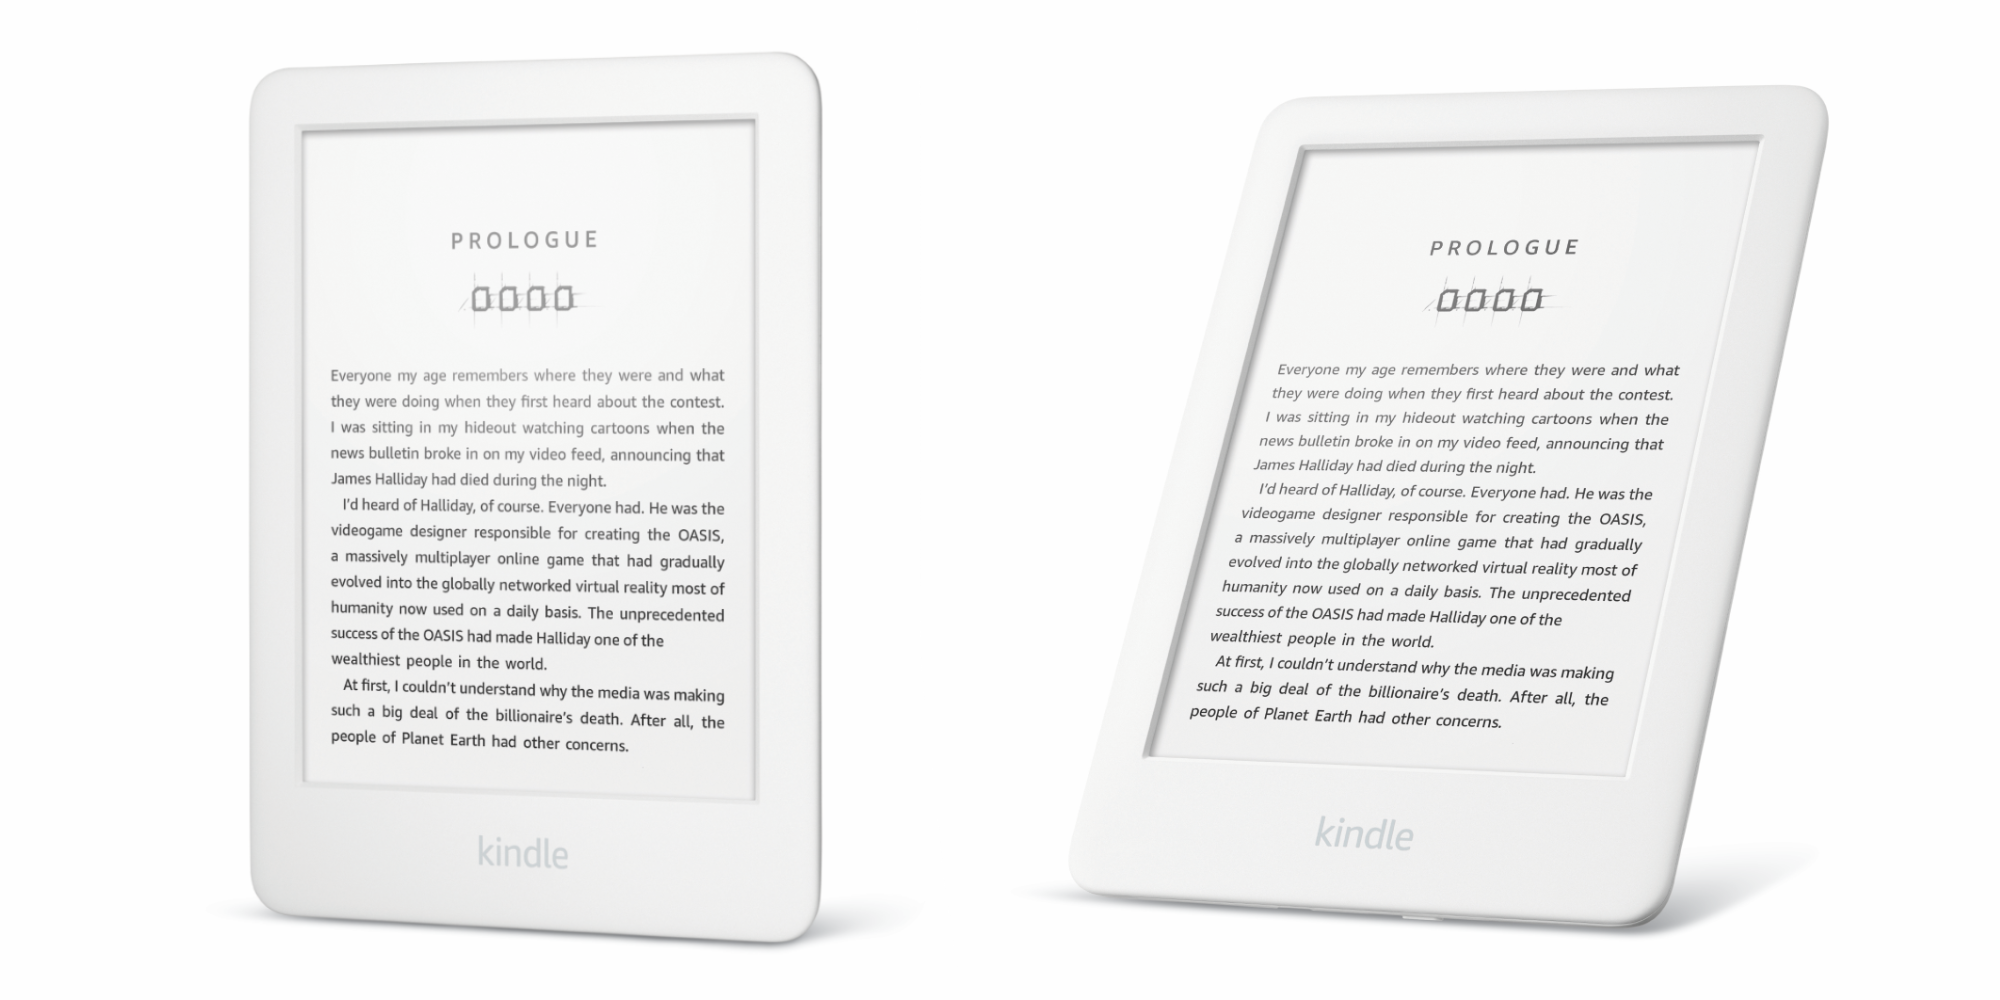 Amazon All New Kindle White